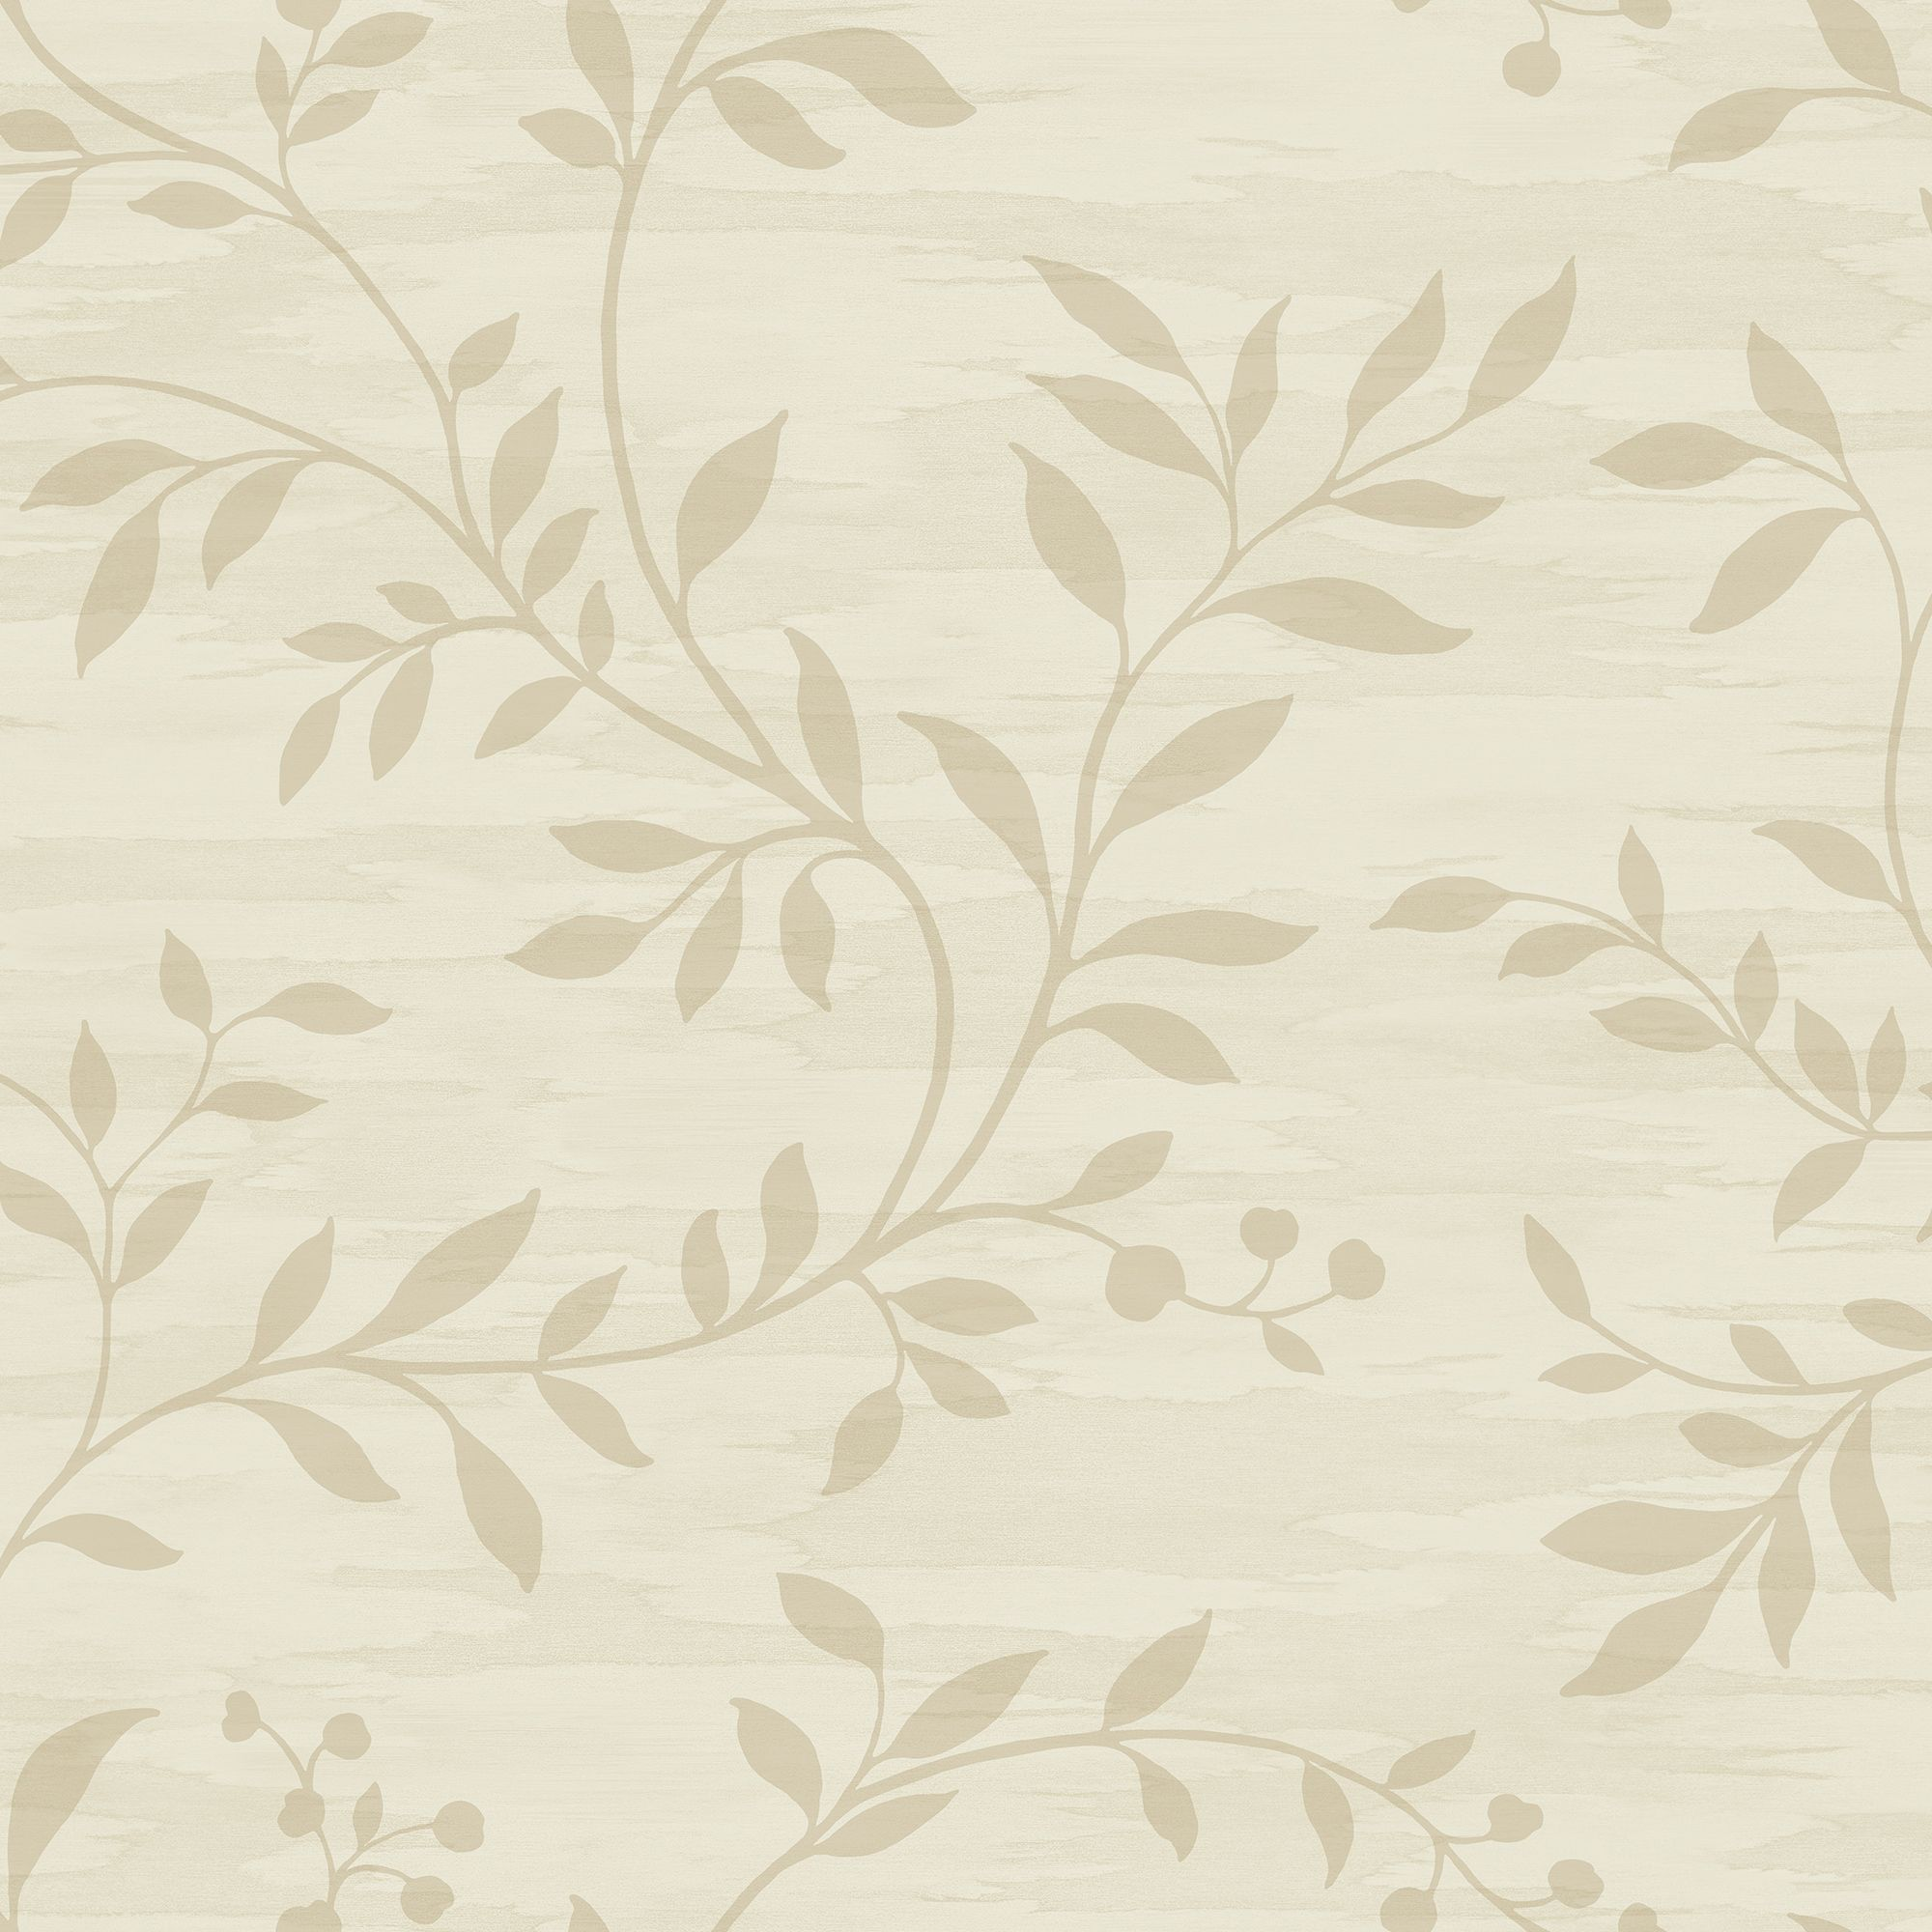 Metallic Gold Wallpaper Details About Seabrook Wallpaper In Metallic Gold Off White Ne50805